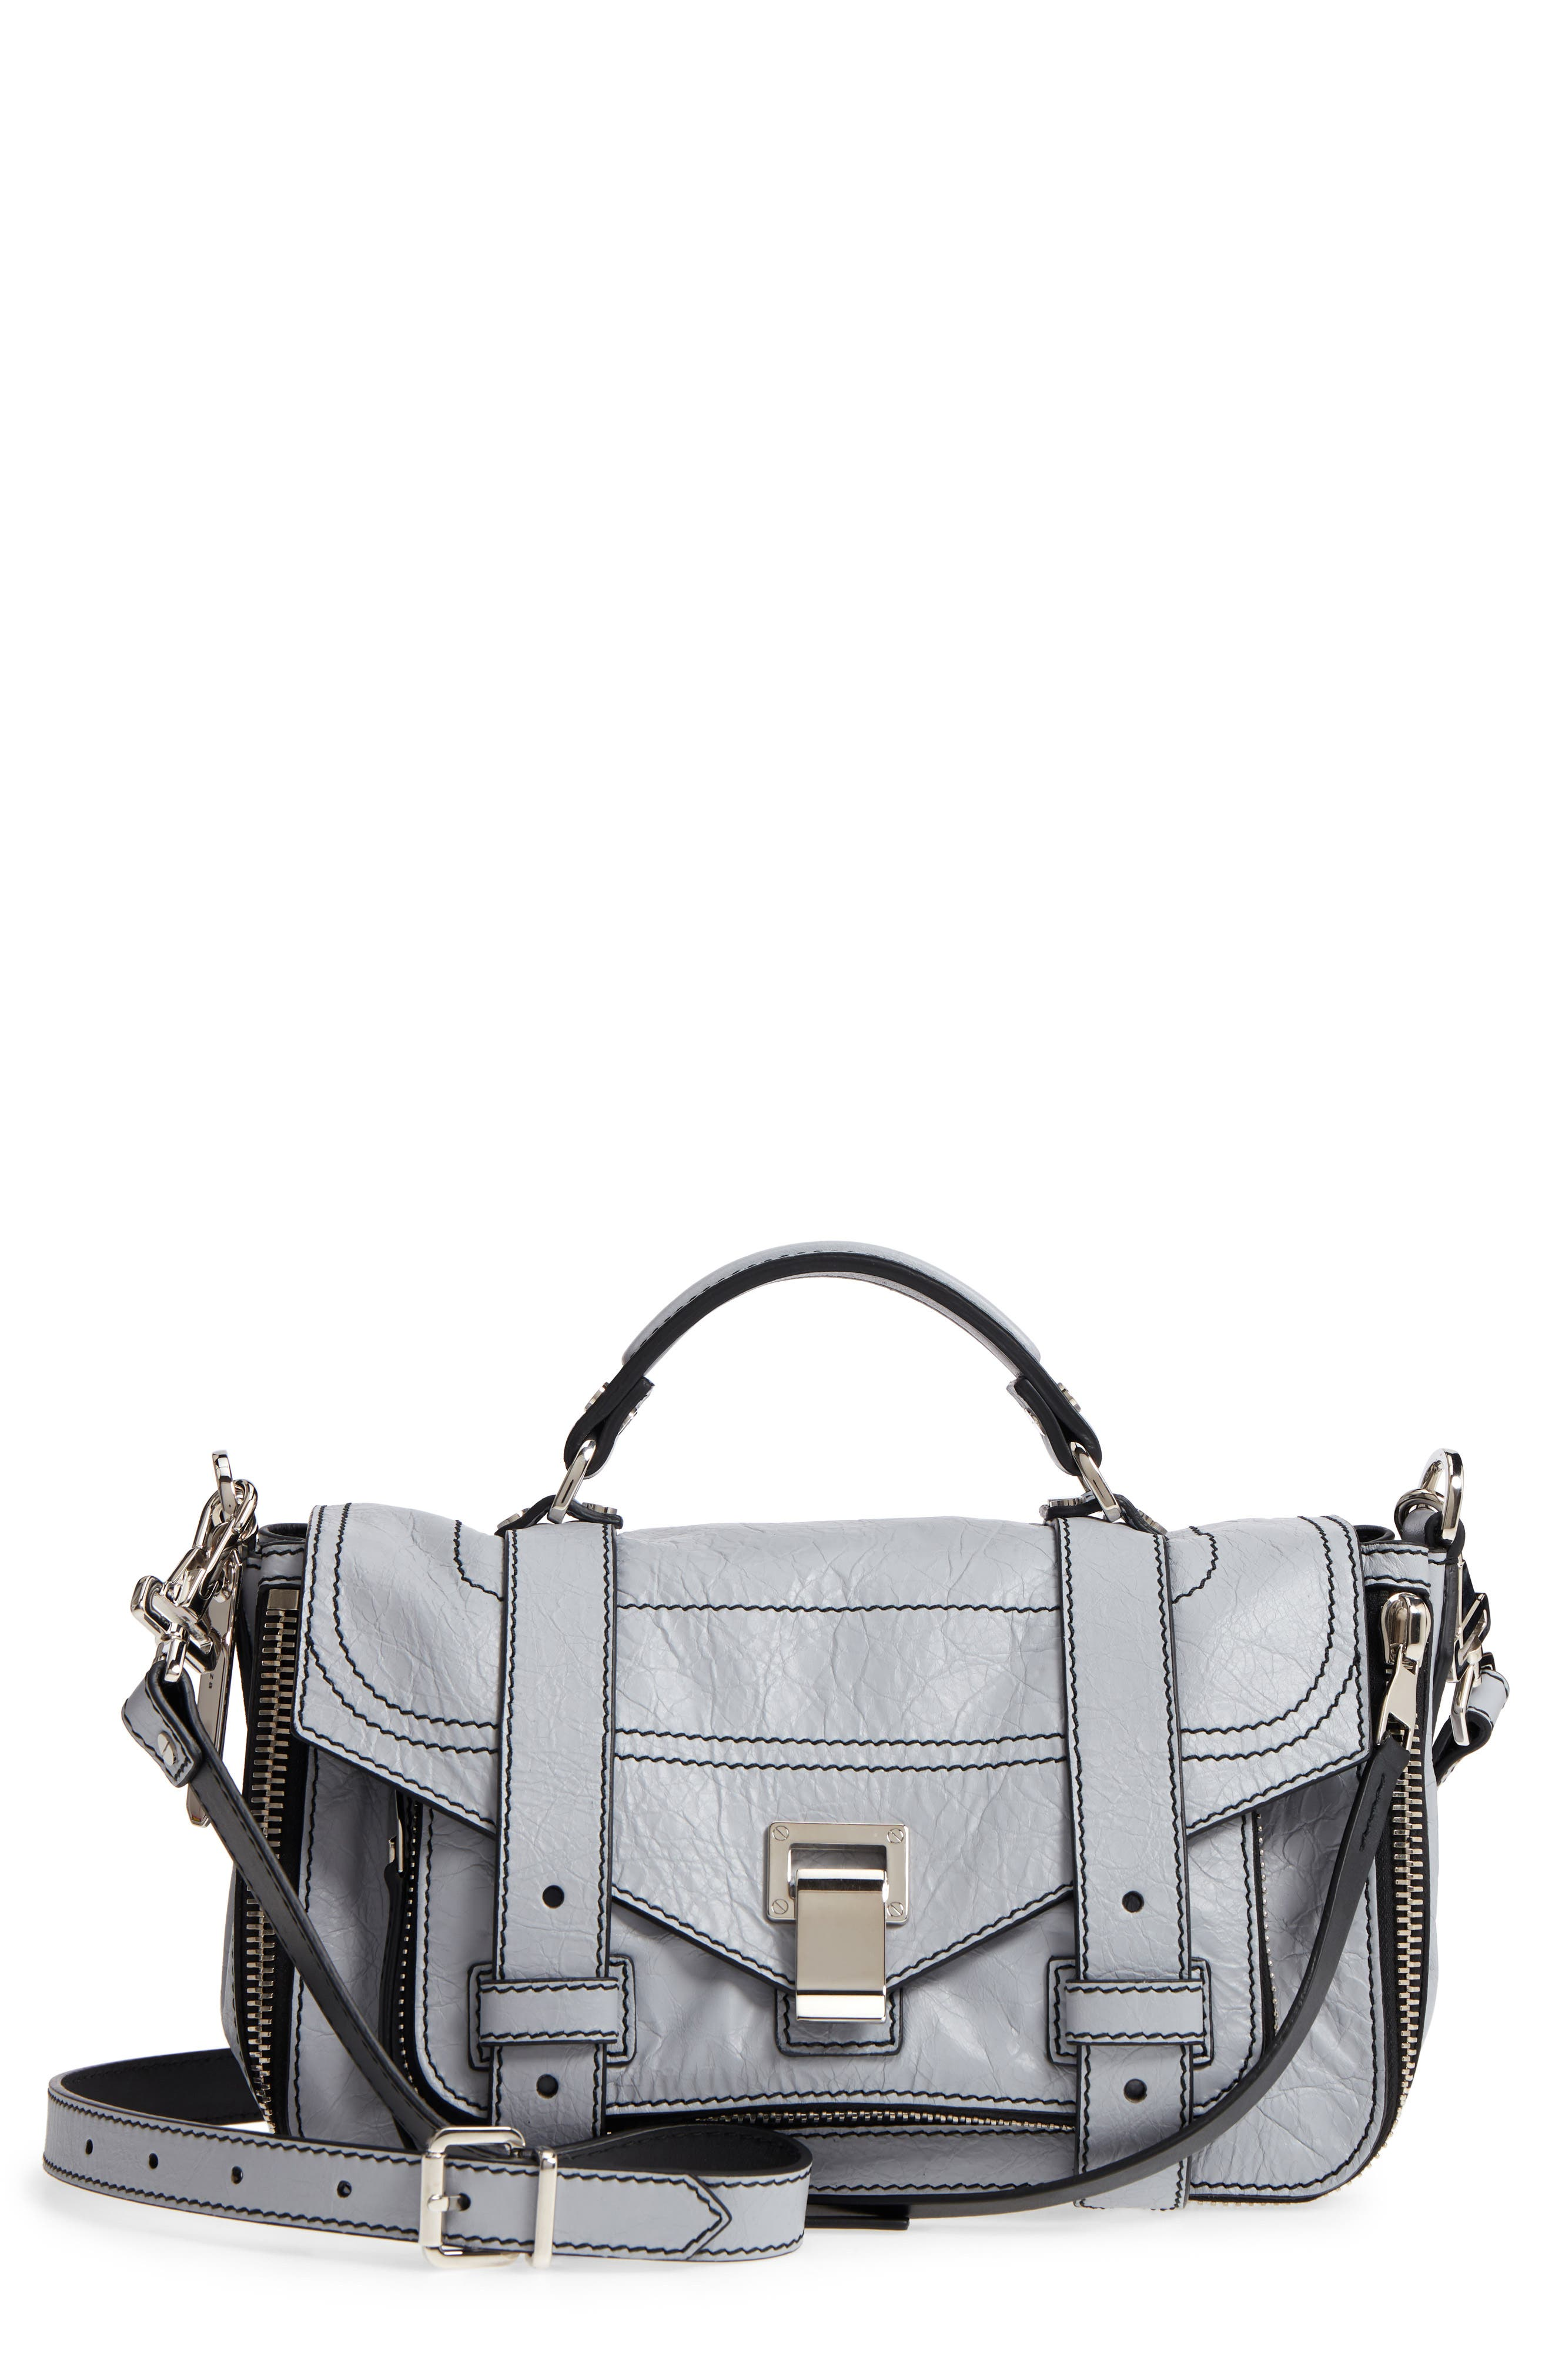 Medium PS1 Paper Leather Satchel,                         Main,                         color, Dove Grey